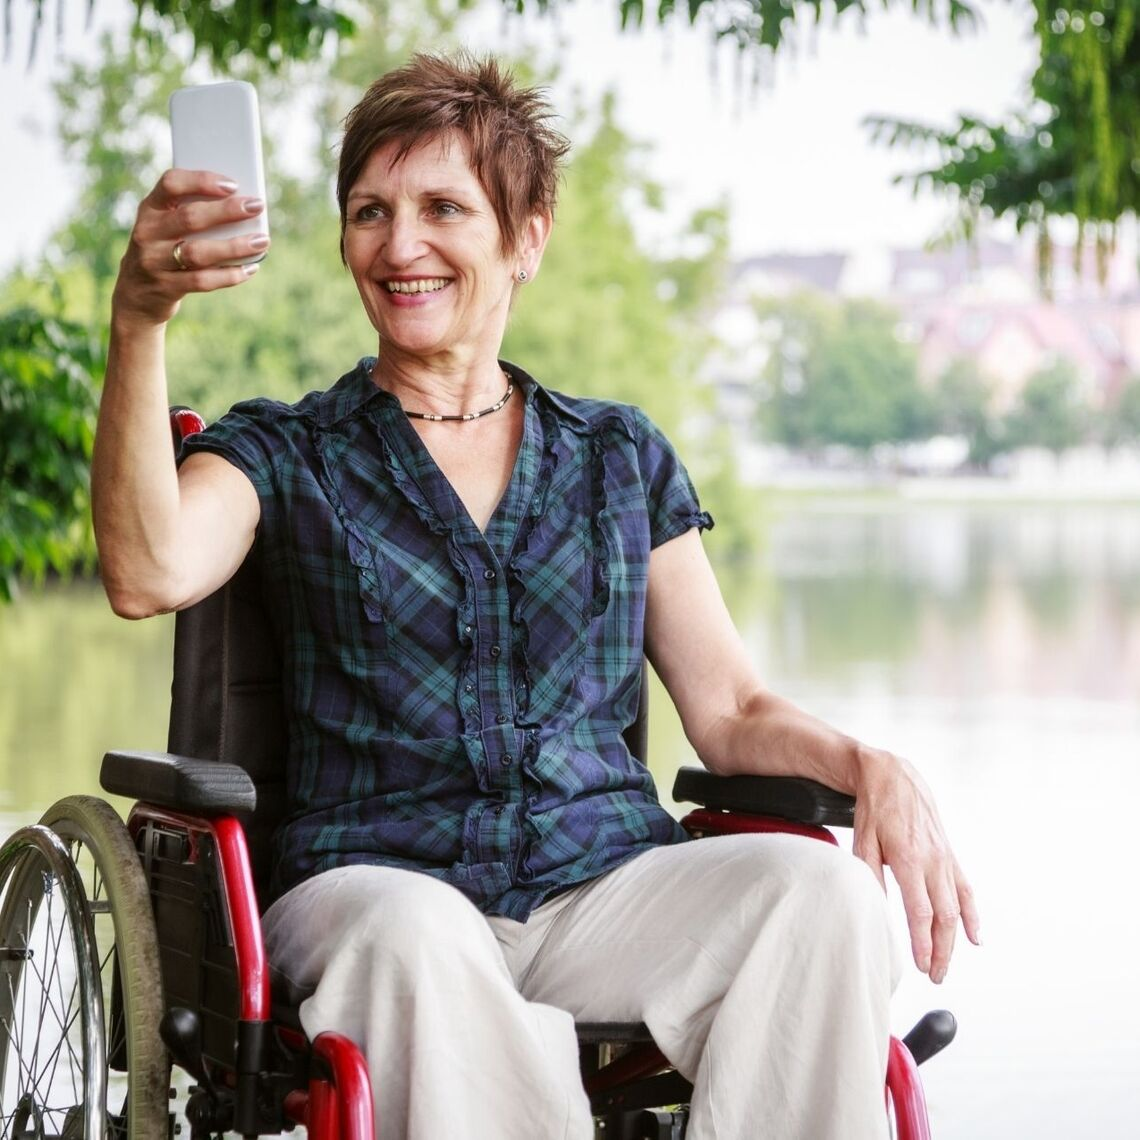 Middle aged woman in a wheelchair, taking a selfie in front of a lake